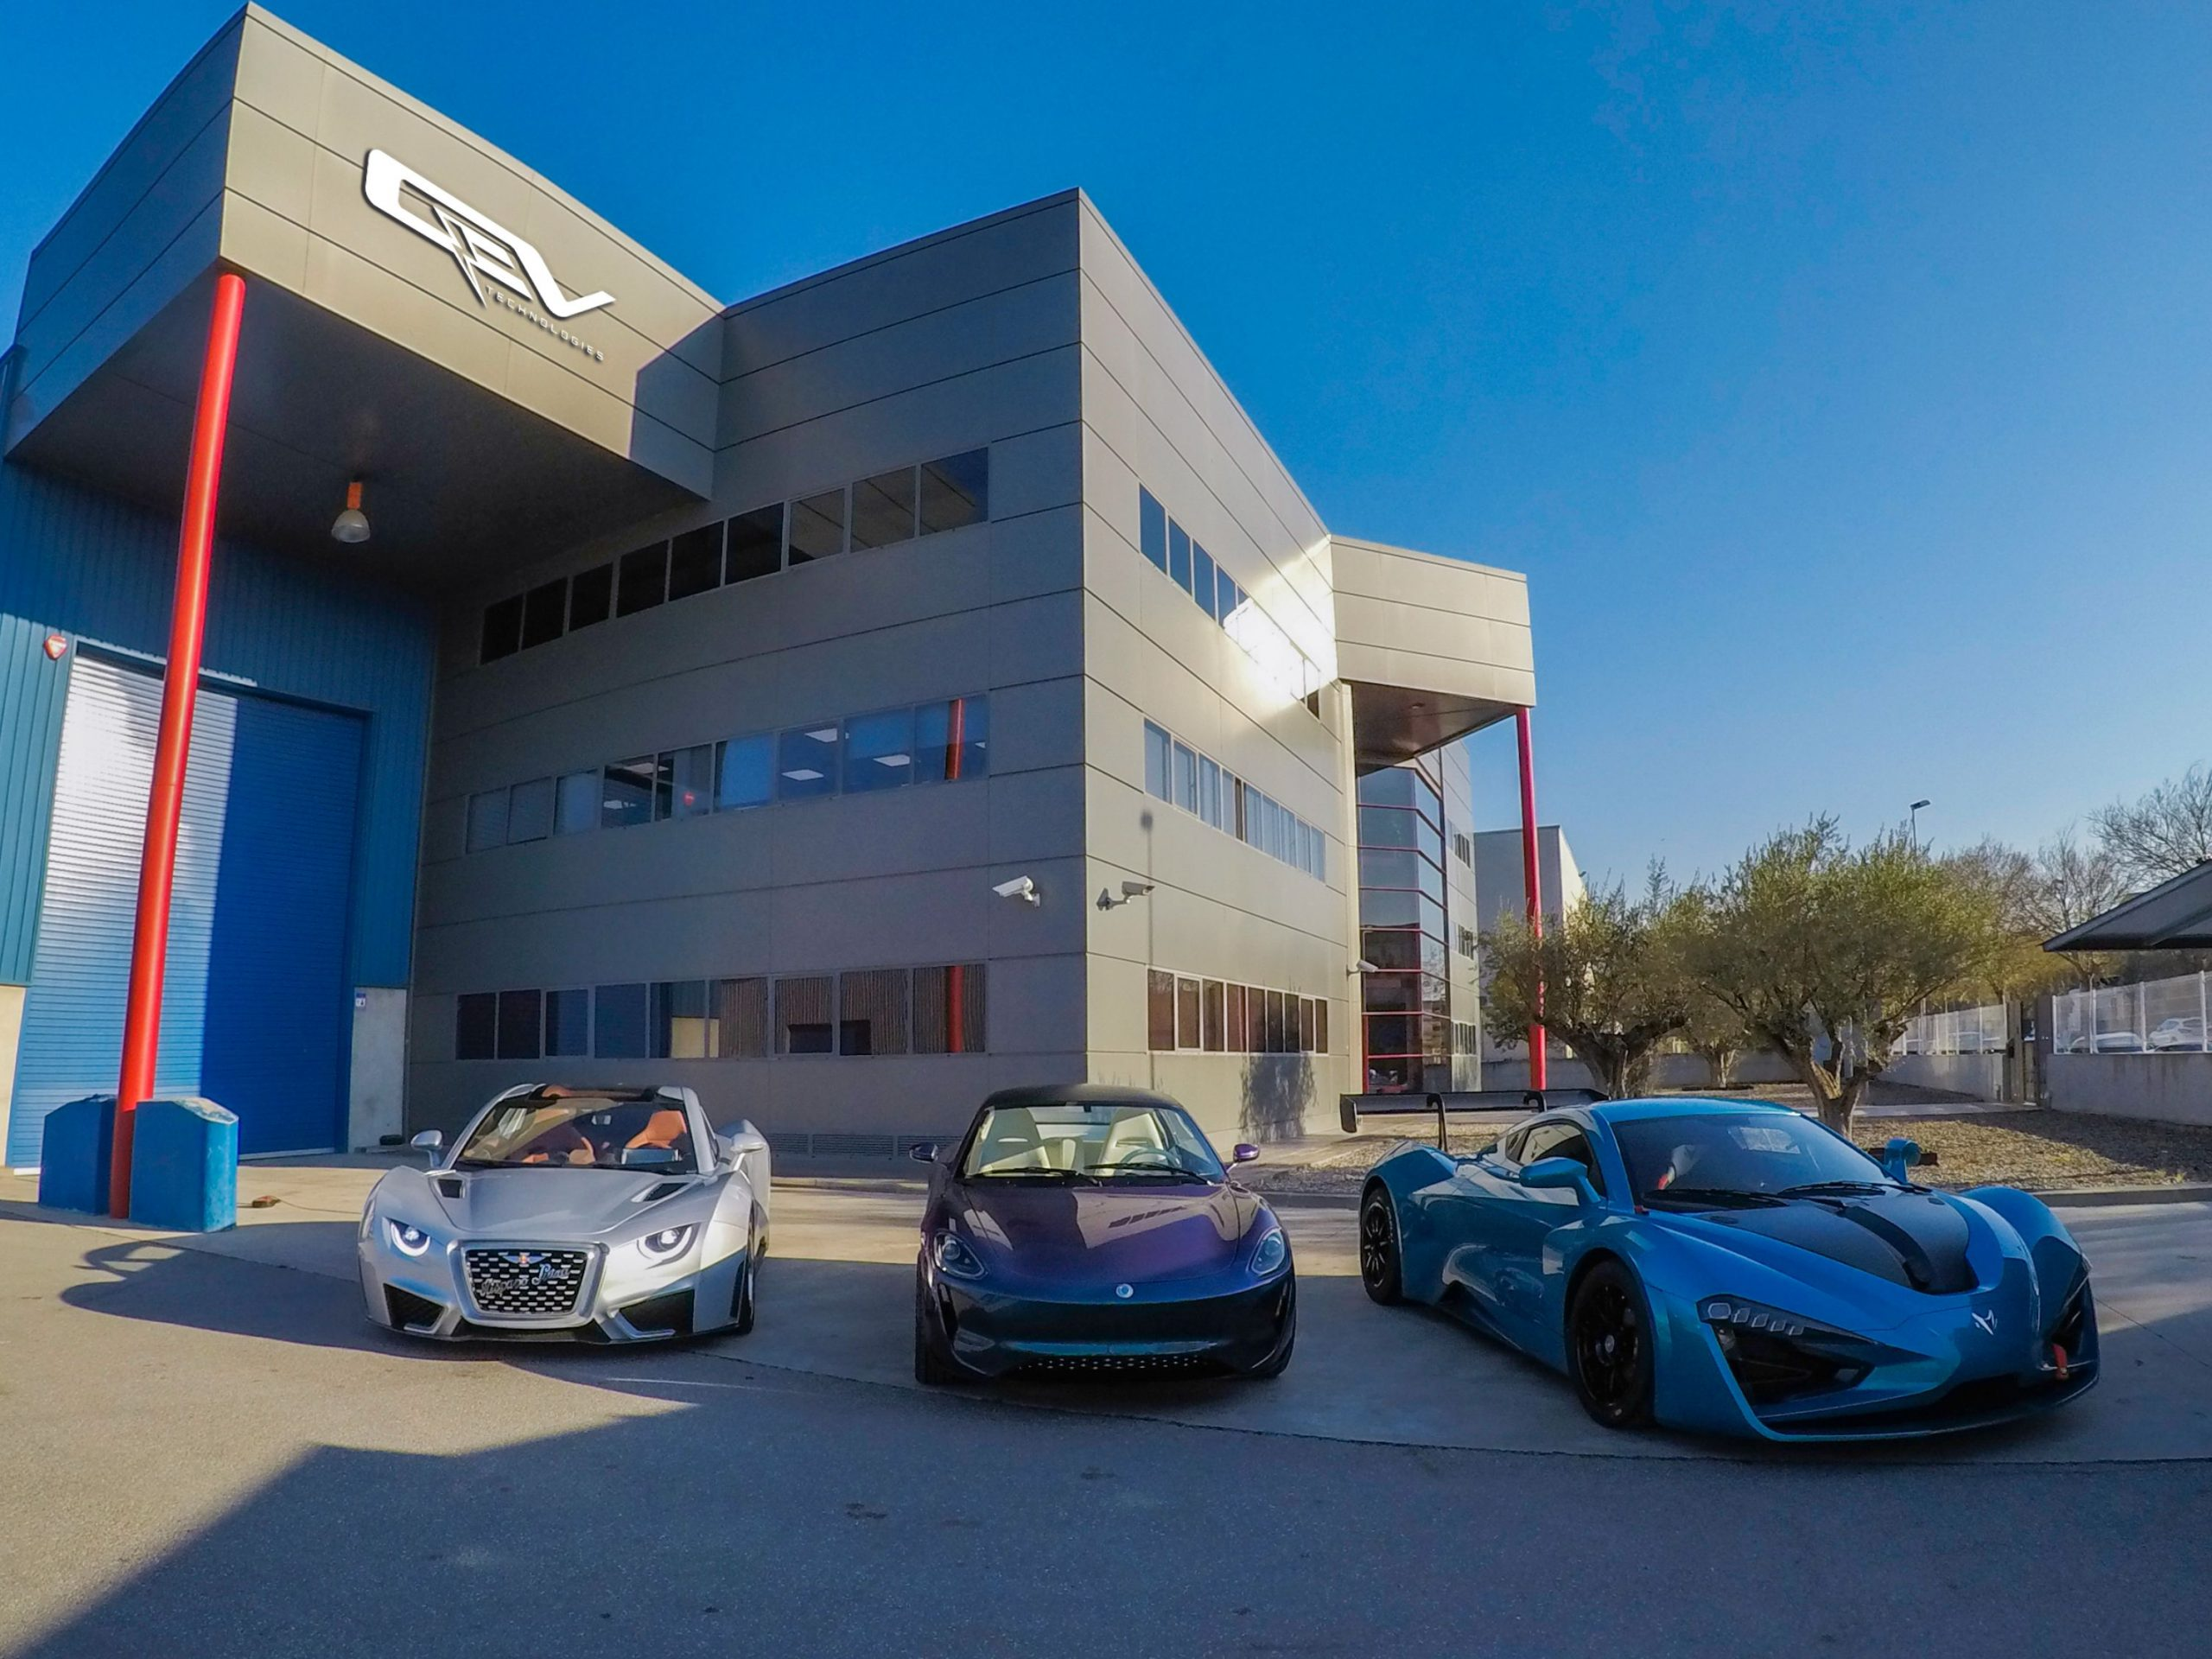 QEV TECHNOLOGIES APPOINTED TO HEAD THE CONSORTIUM OF THE NEW DECARBONISATION HUB OF BARCELONA (D-HUB) IN THE AIM OF REINDUSTRIALISING THE NISSAN PLANT IN BARCELONA, QEV